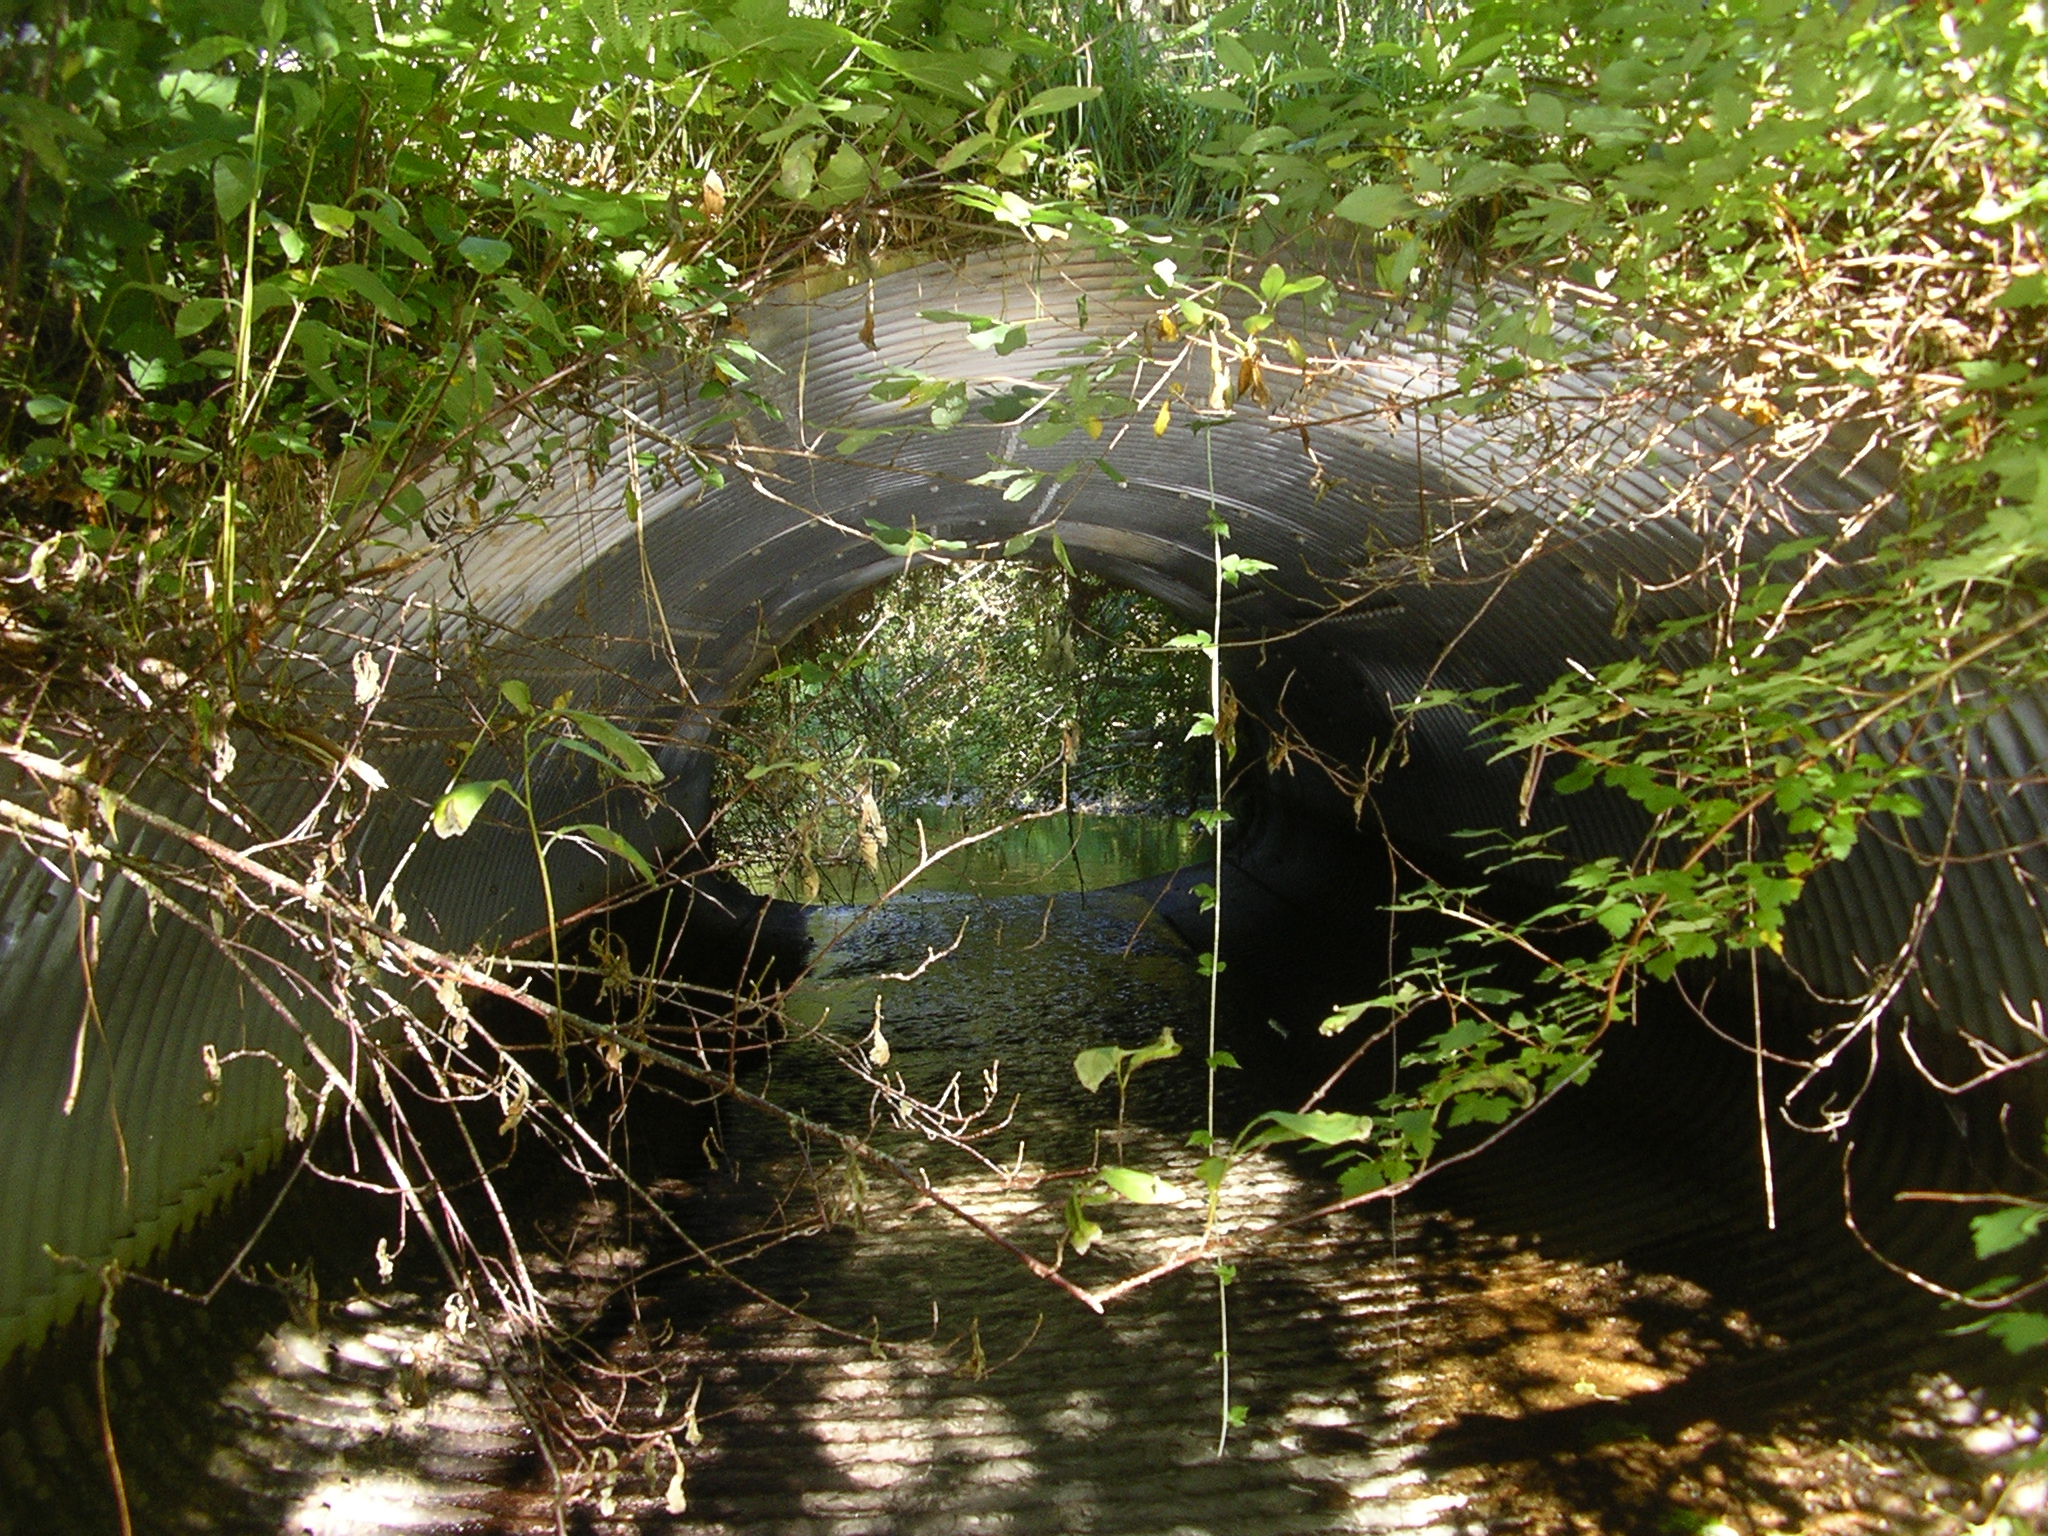 Instream barriers such as culverts like this can limit fish passage to available habitat.